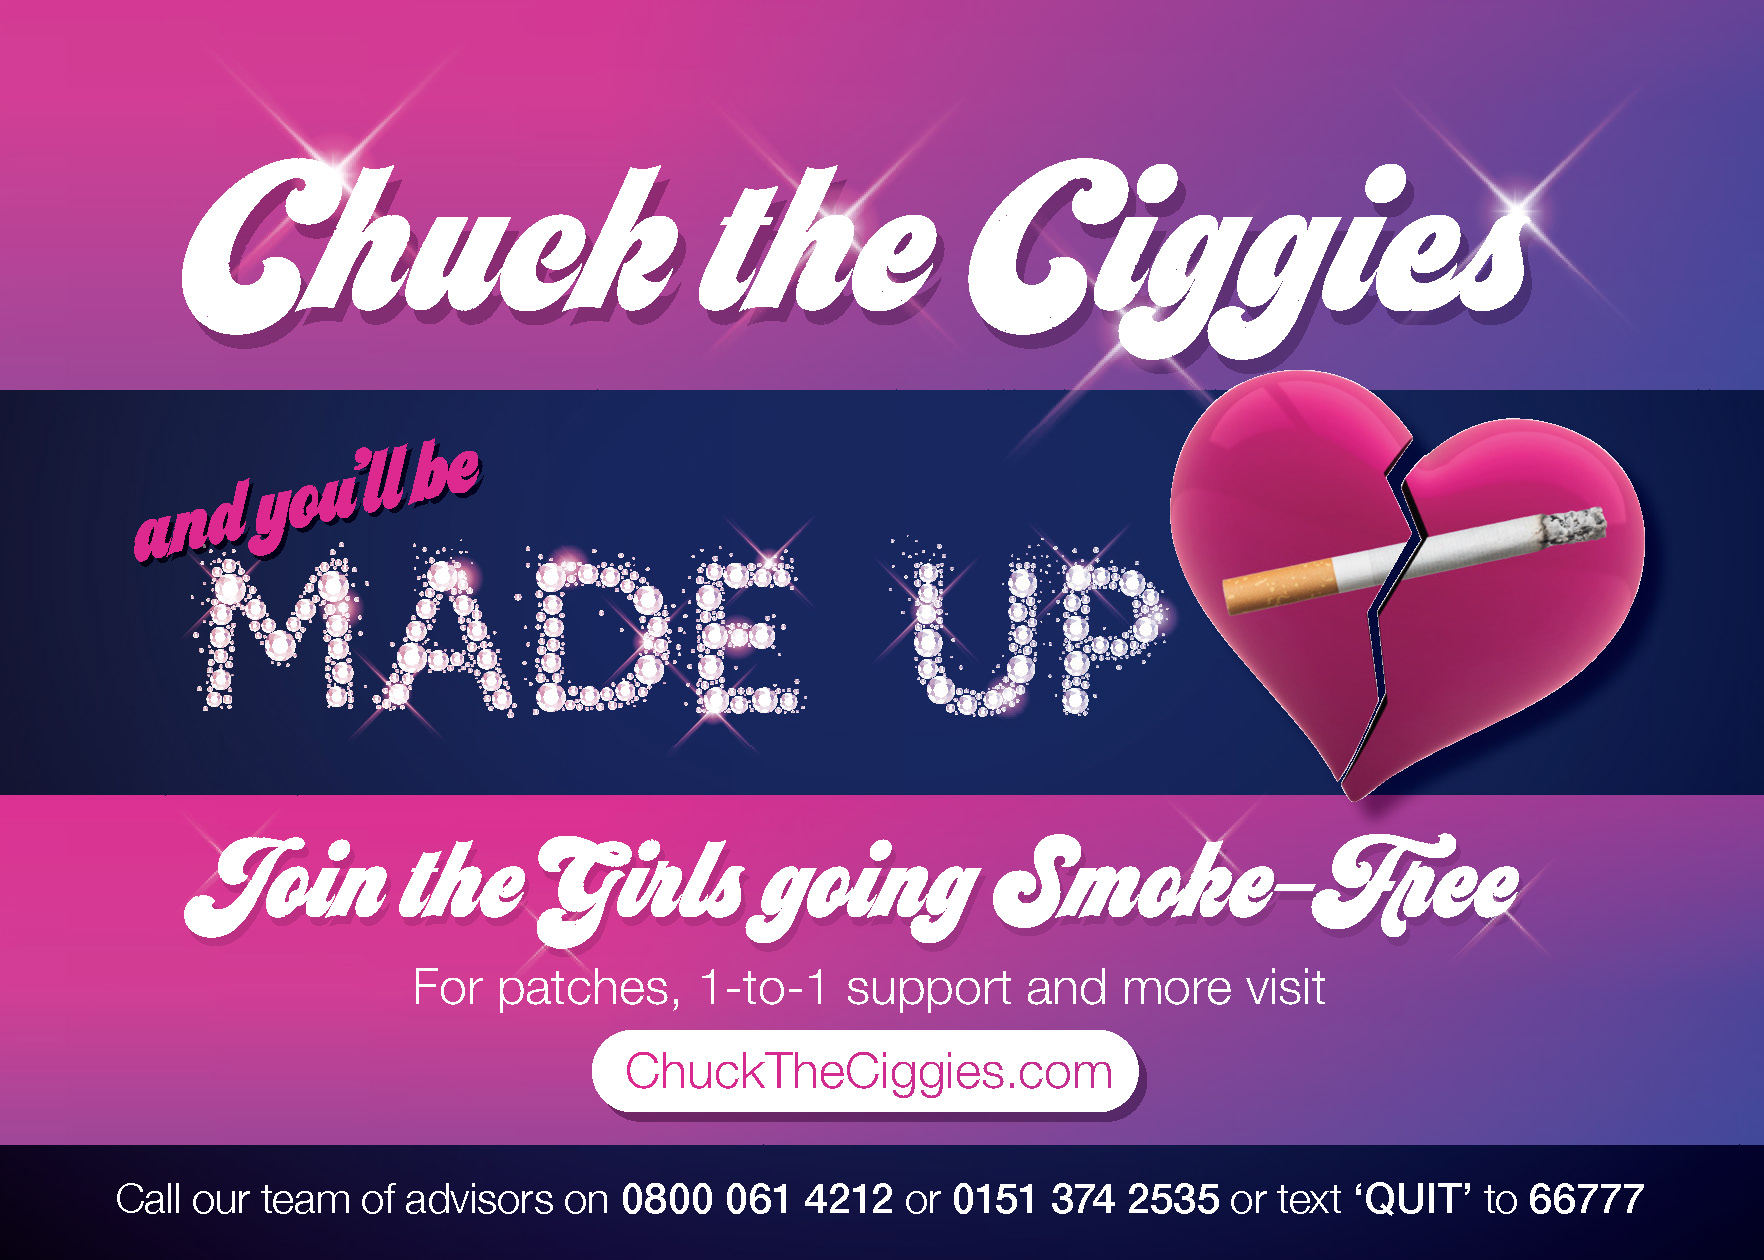 Print all In new window Hundreds commit to quit smoking following campaign in Liverpool